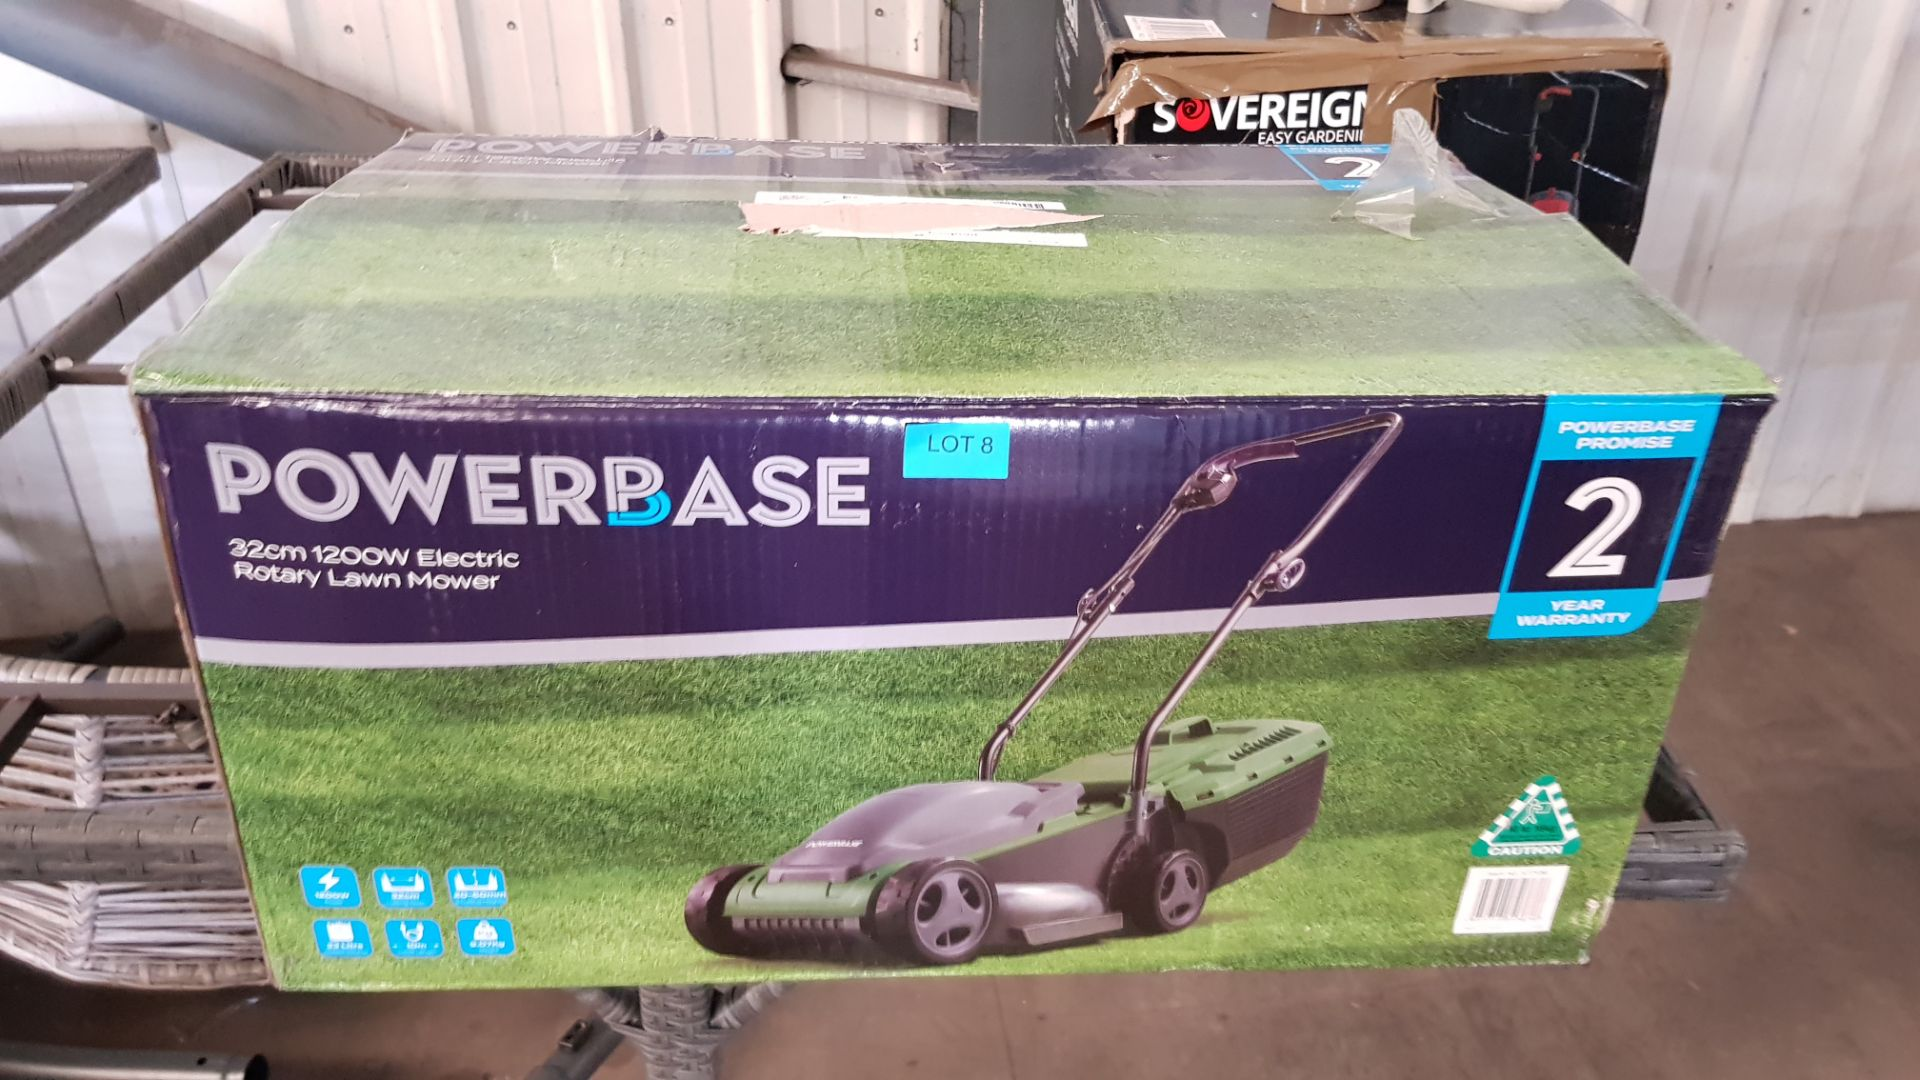 (P8) 1x Powerbase 32cm 1200W Electric Rotary Lawnmower RRP £59. Contents Appear As New, Clean & Not - Image 3 of 4